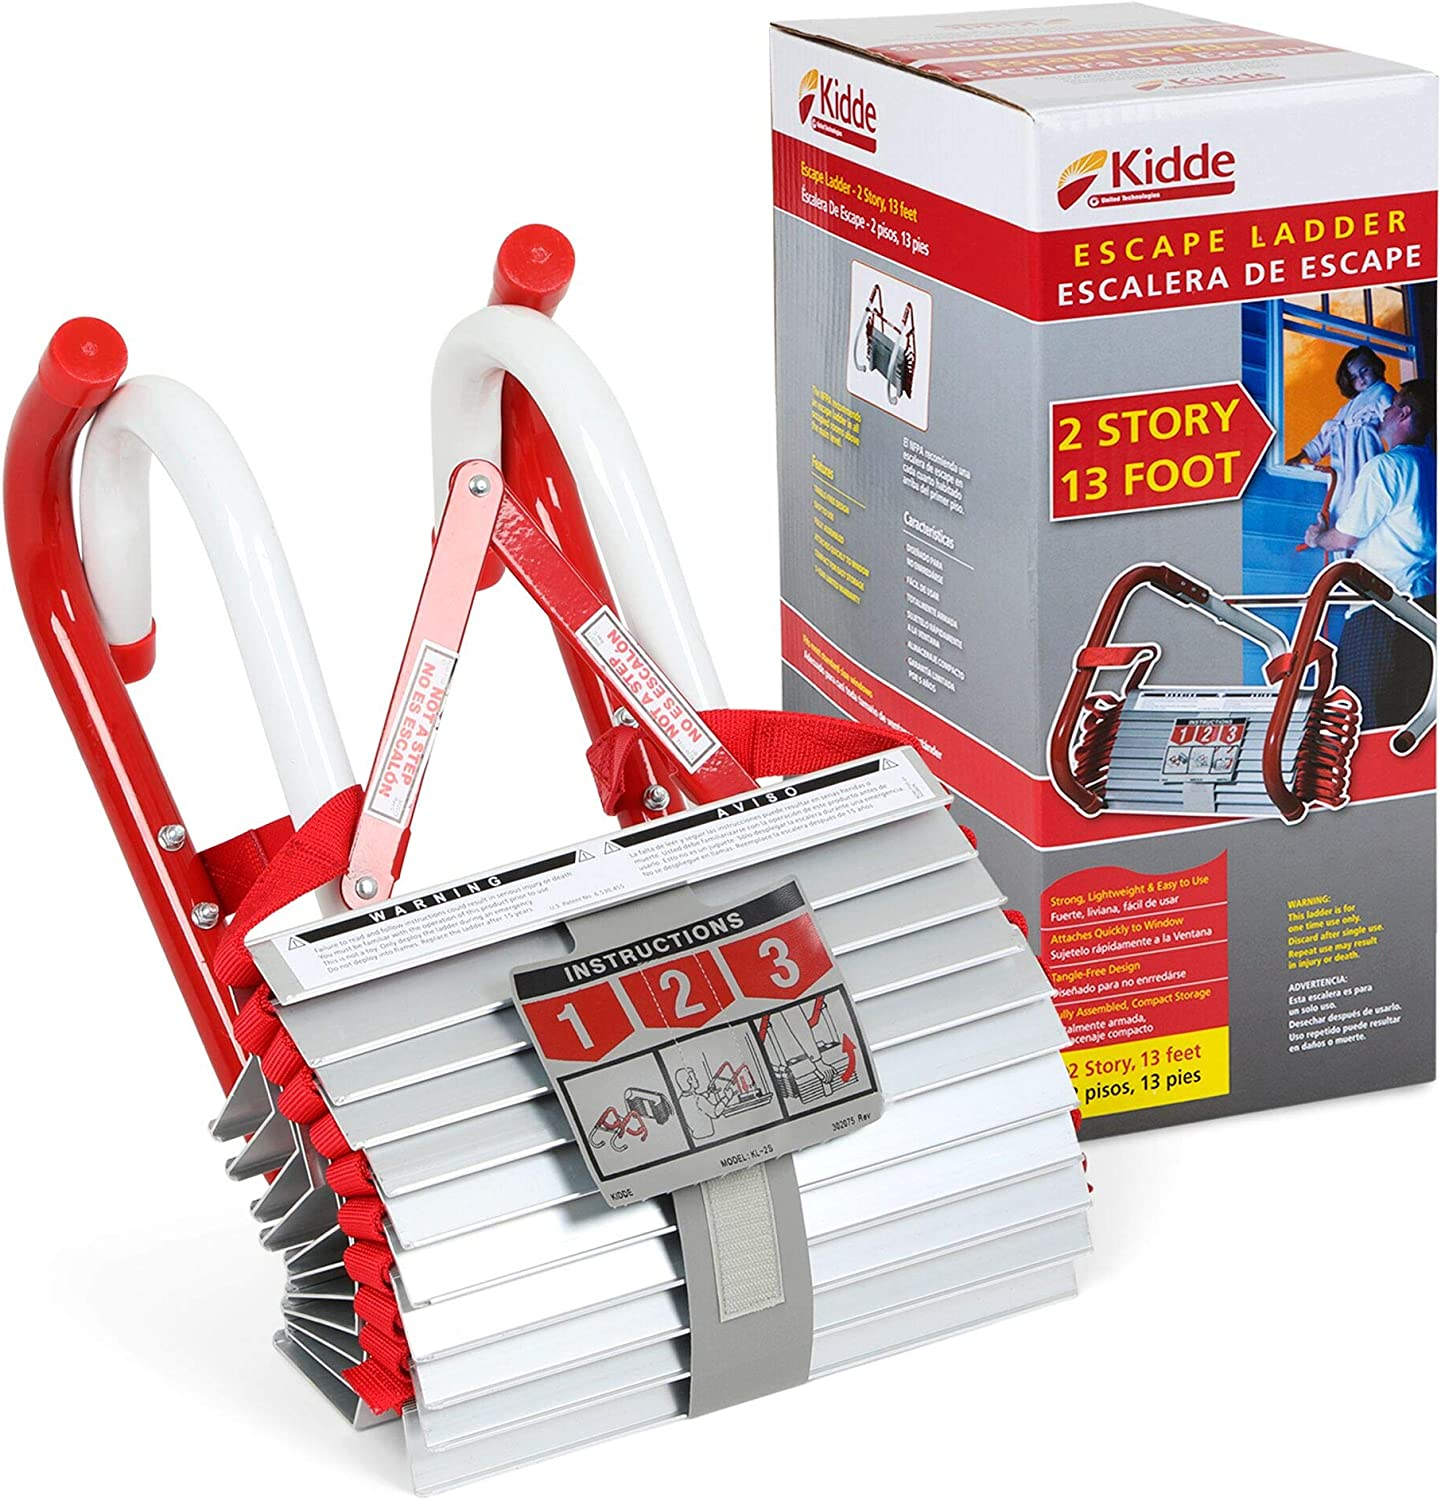 Kidde Two Story 13-Foot Fire Escape Ladder $24.18 Coupon